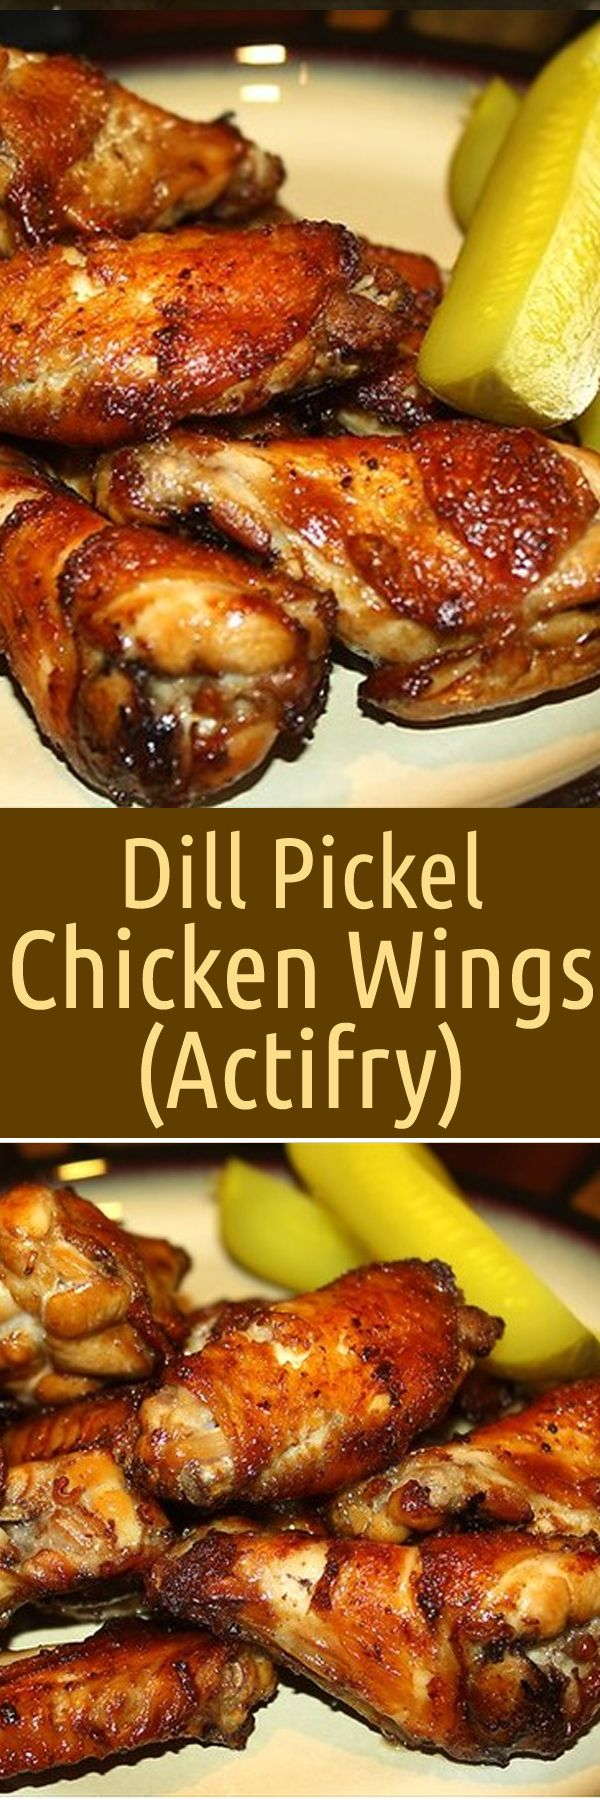 Dill Pickle Chicken Wings (Actifry) recipezazz.com